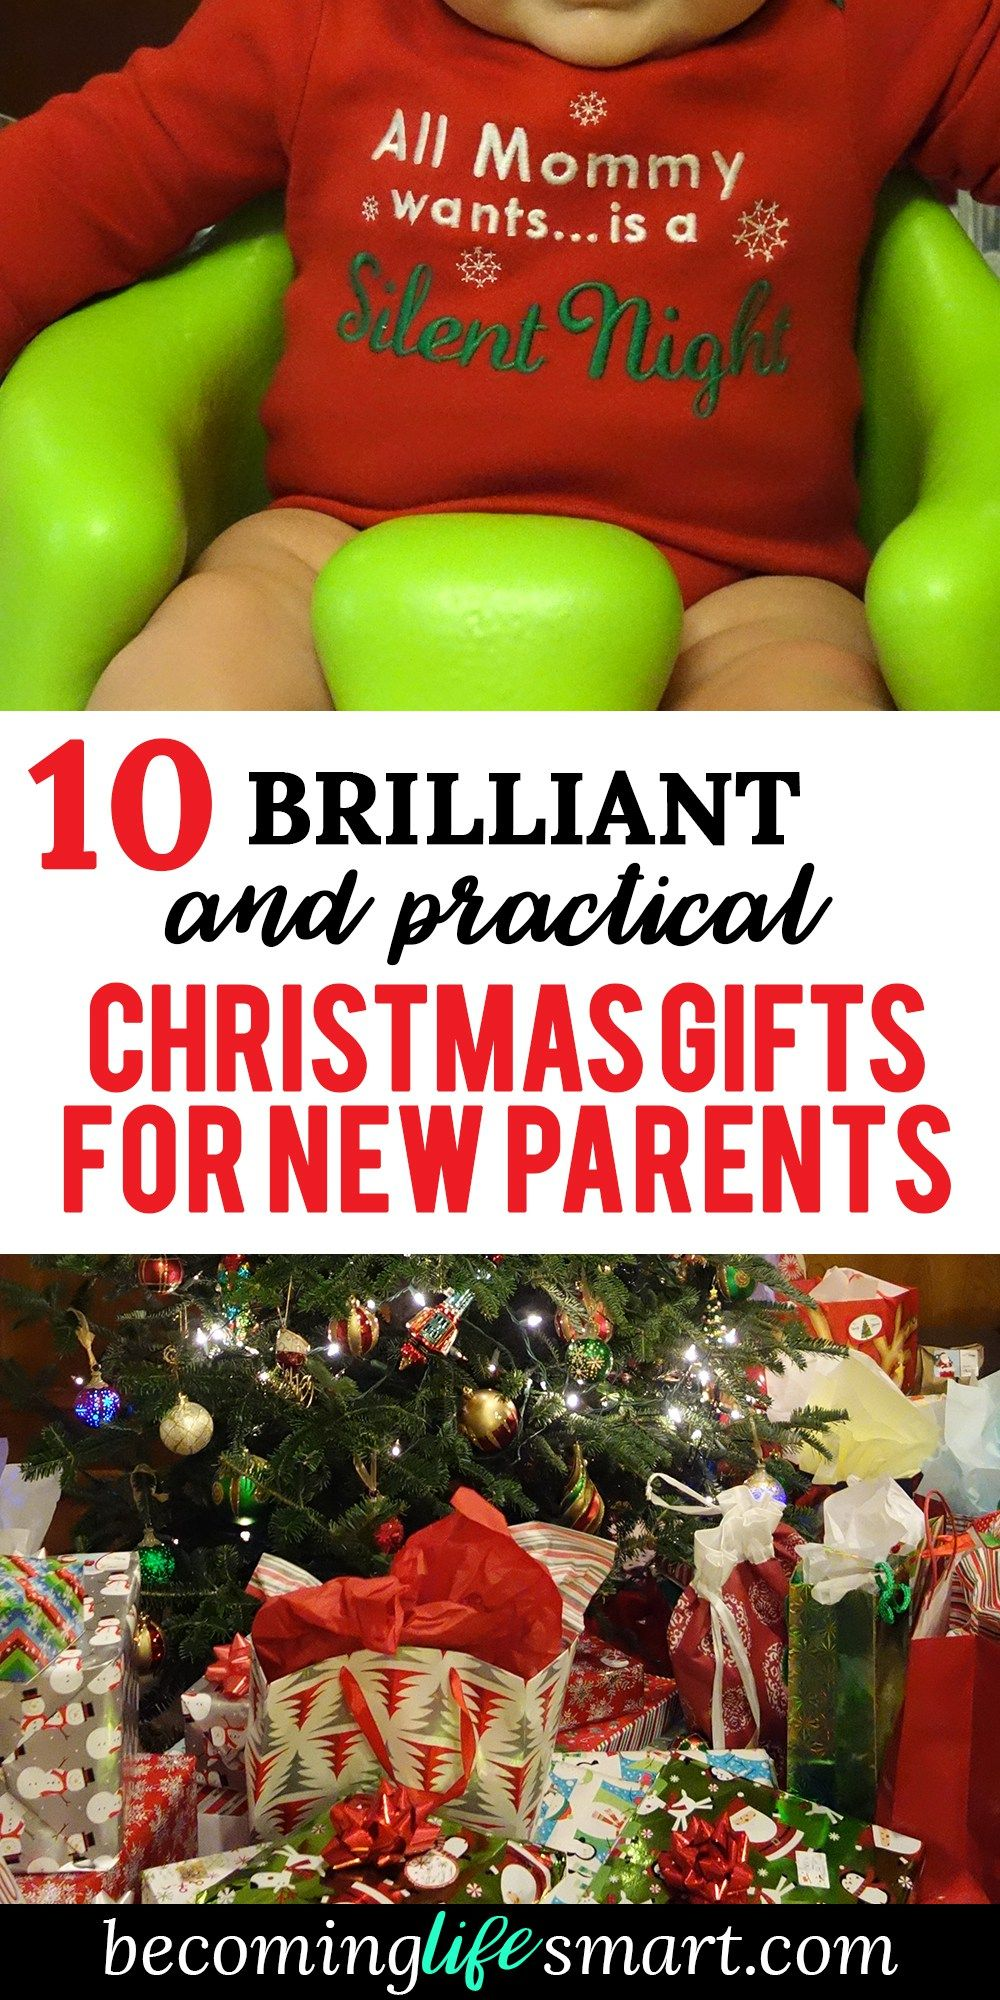 10 Brilliant And Practical Christmas Gifts For New Parents Becoming Life Smart Diy Christmas Gifts For Parents Practical Christmas Gift Christmas Gifts For Parents